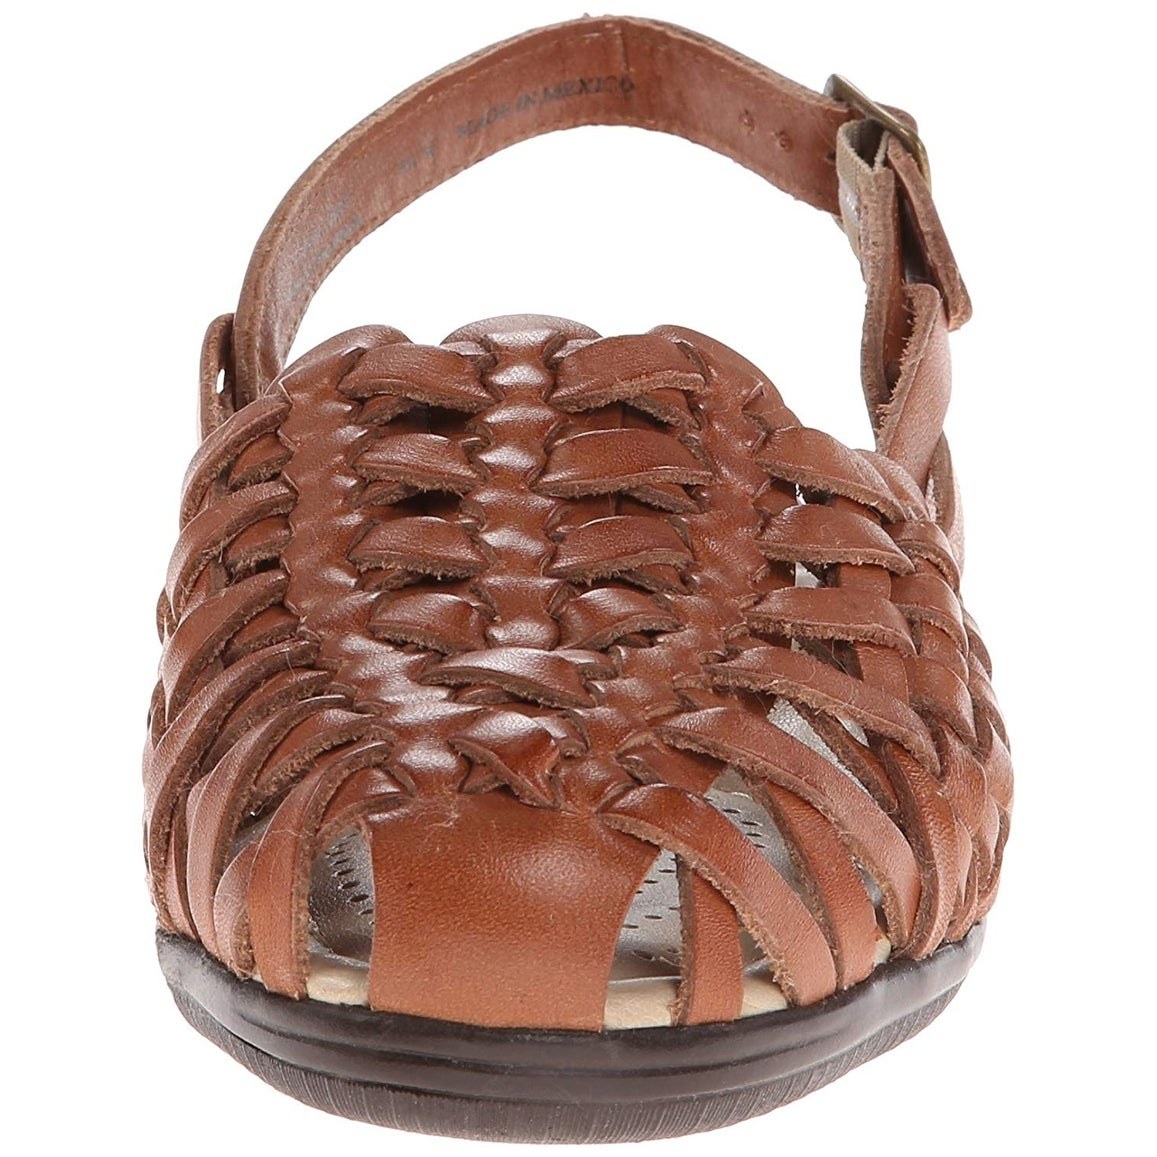 4749759f1ce9 Shop Softspots Womens Tobago Leather Closed Toe Casual Strappy Sandals -  Free Shipping On Orders Over  45 - Overstock - 22362435